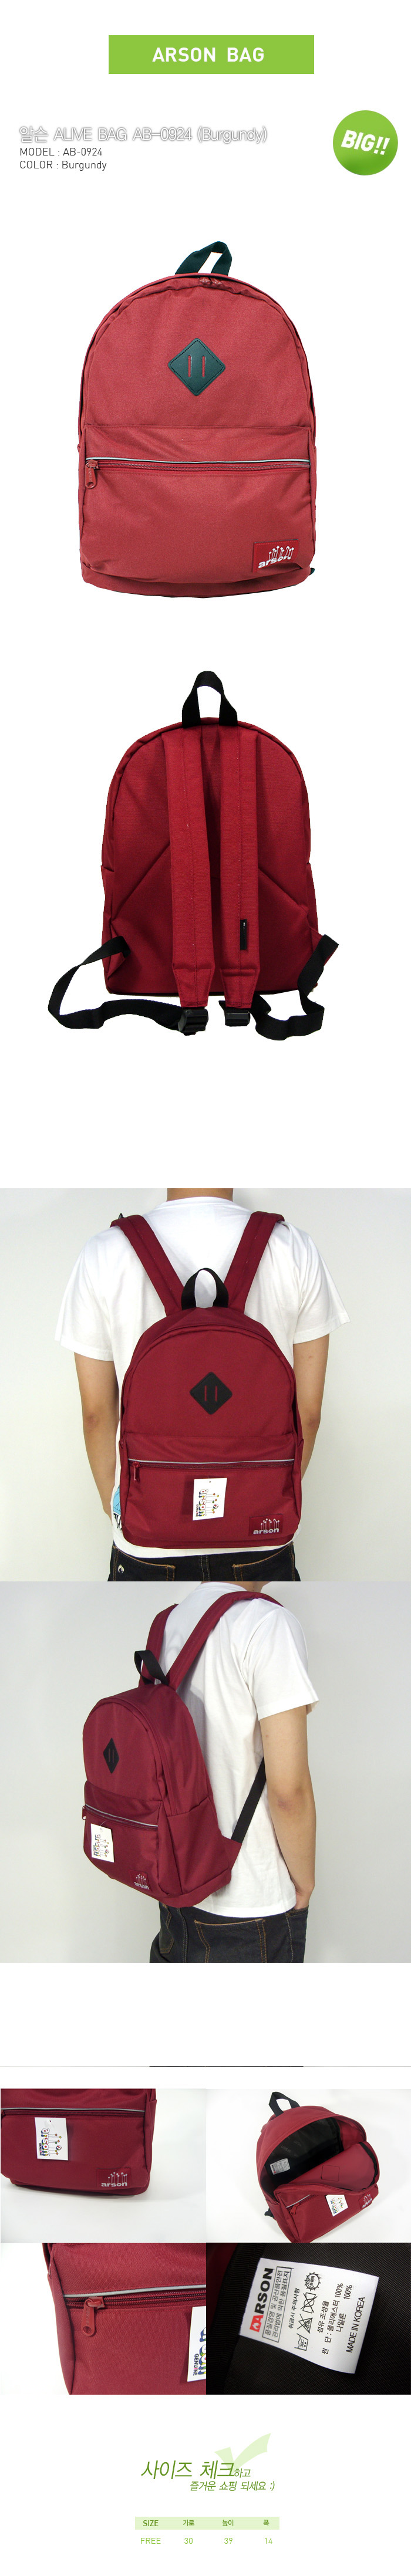 [ ARSON ] AB-0924 (Burgundy)/Backpack School Bag